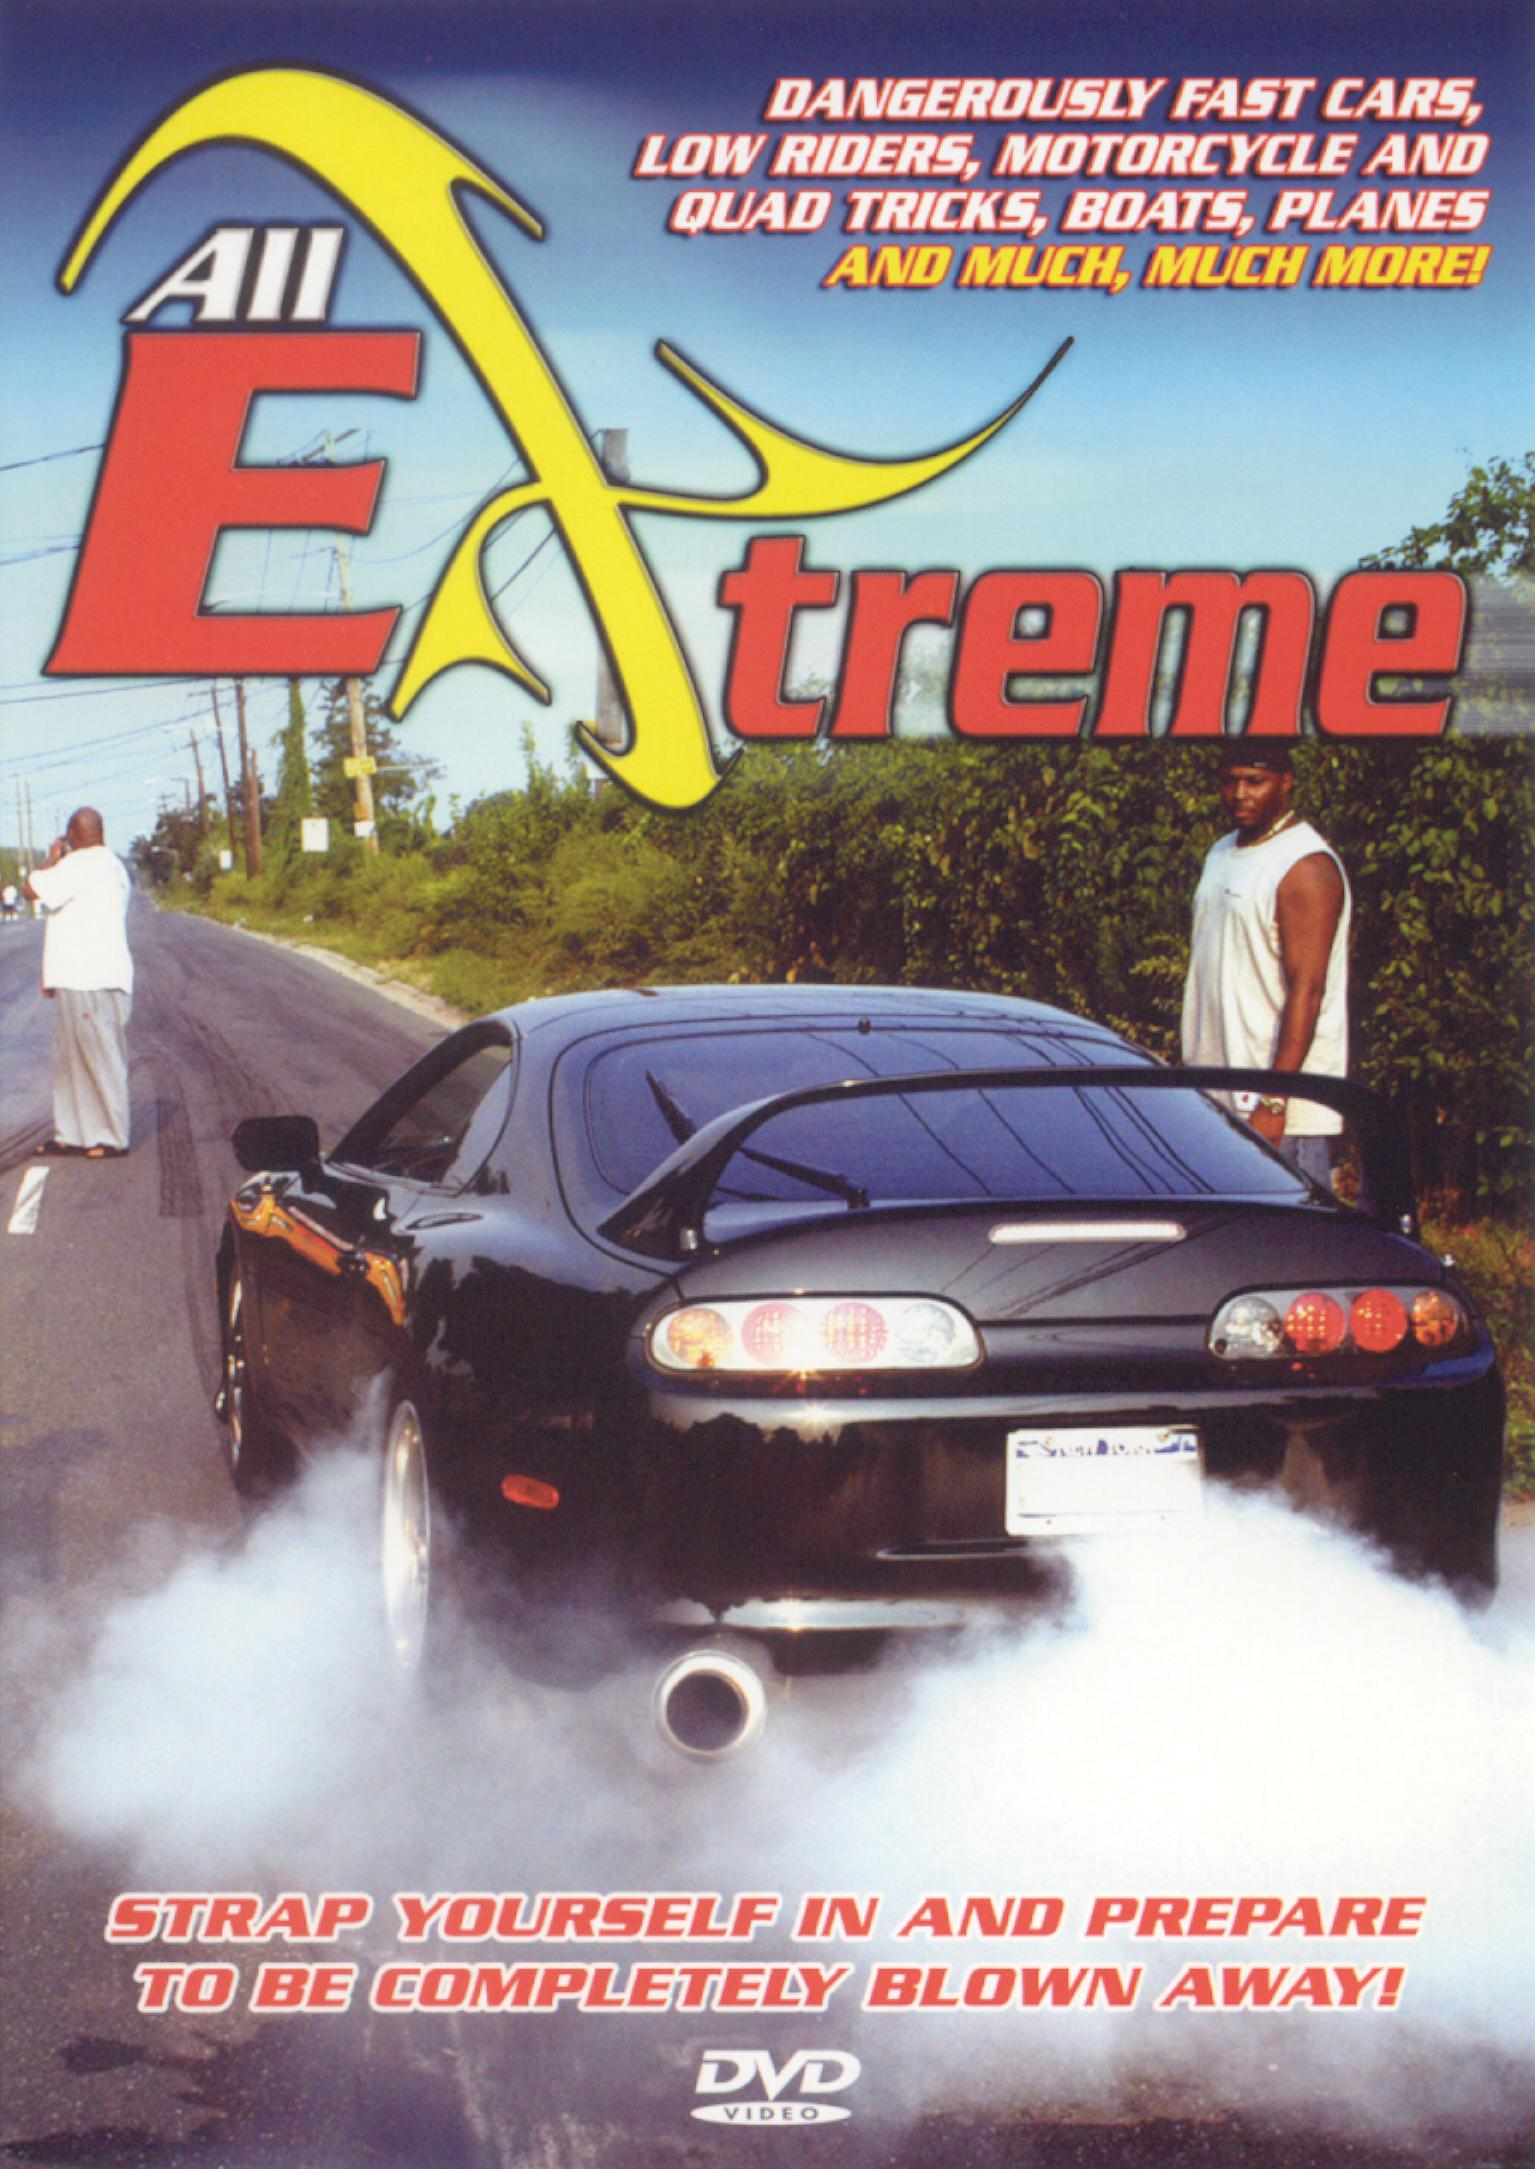 All Extreme